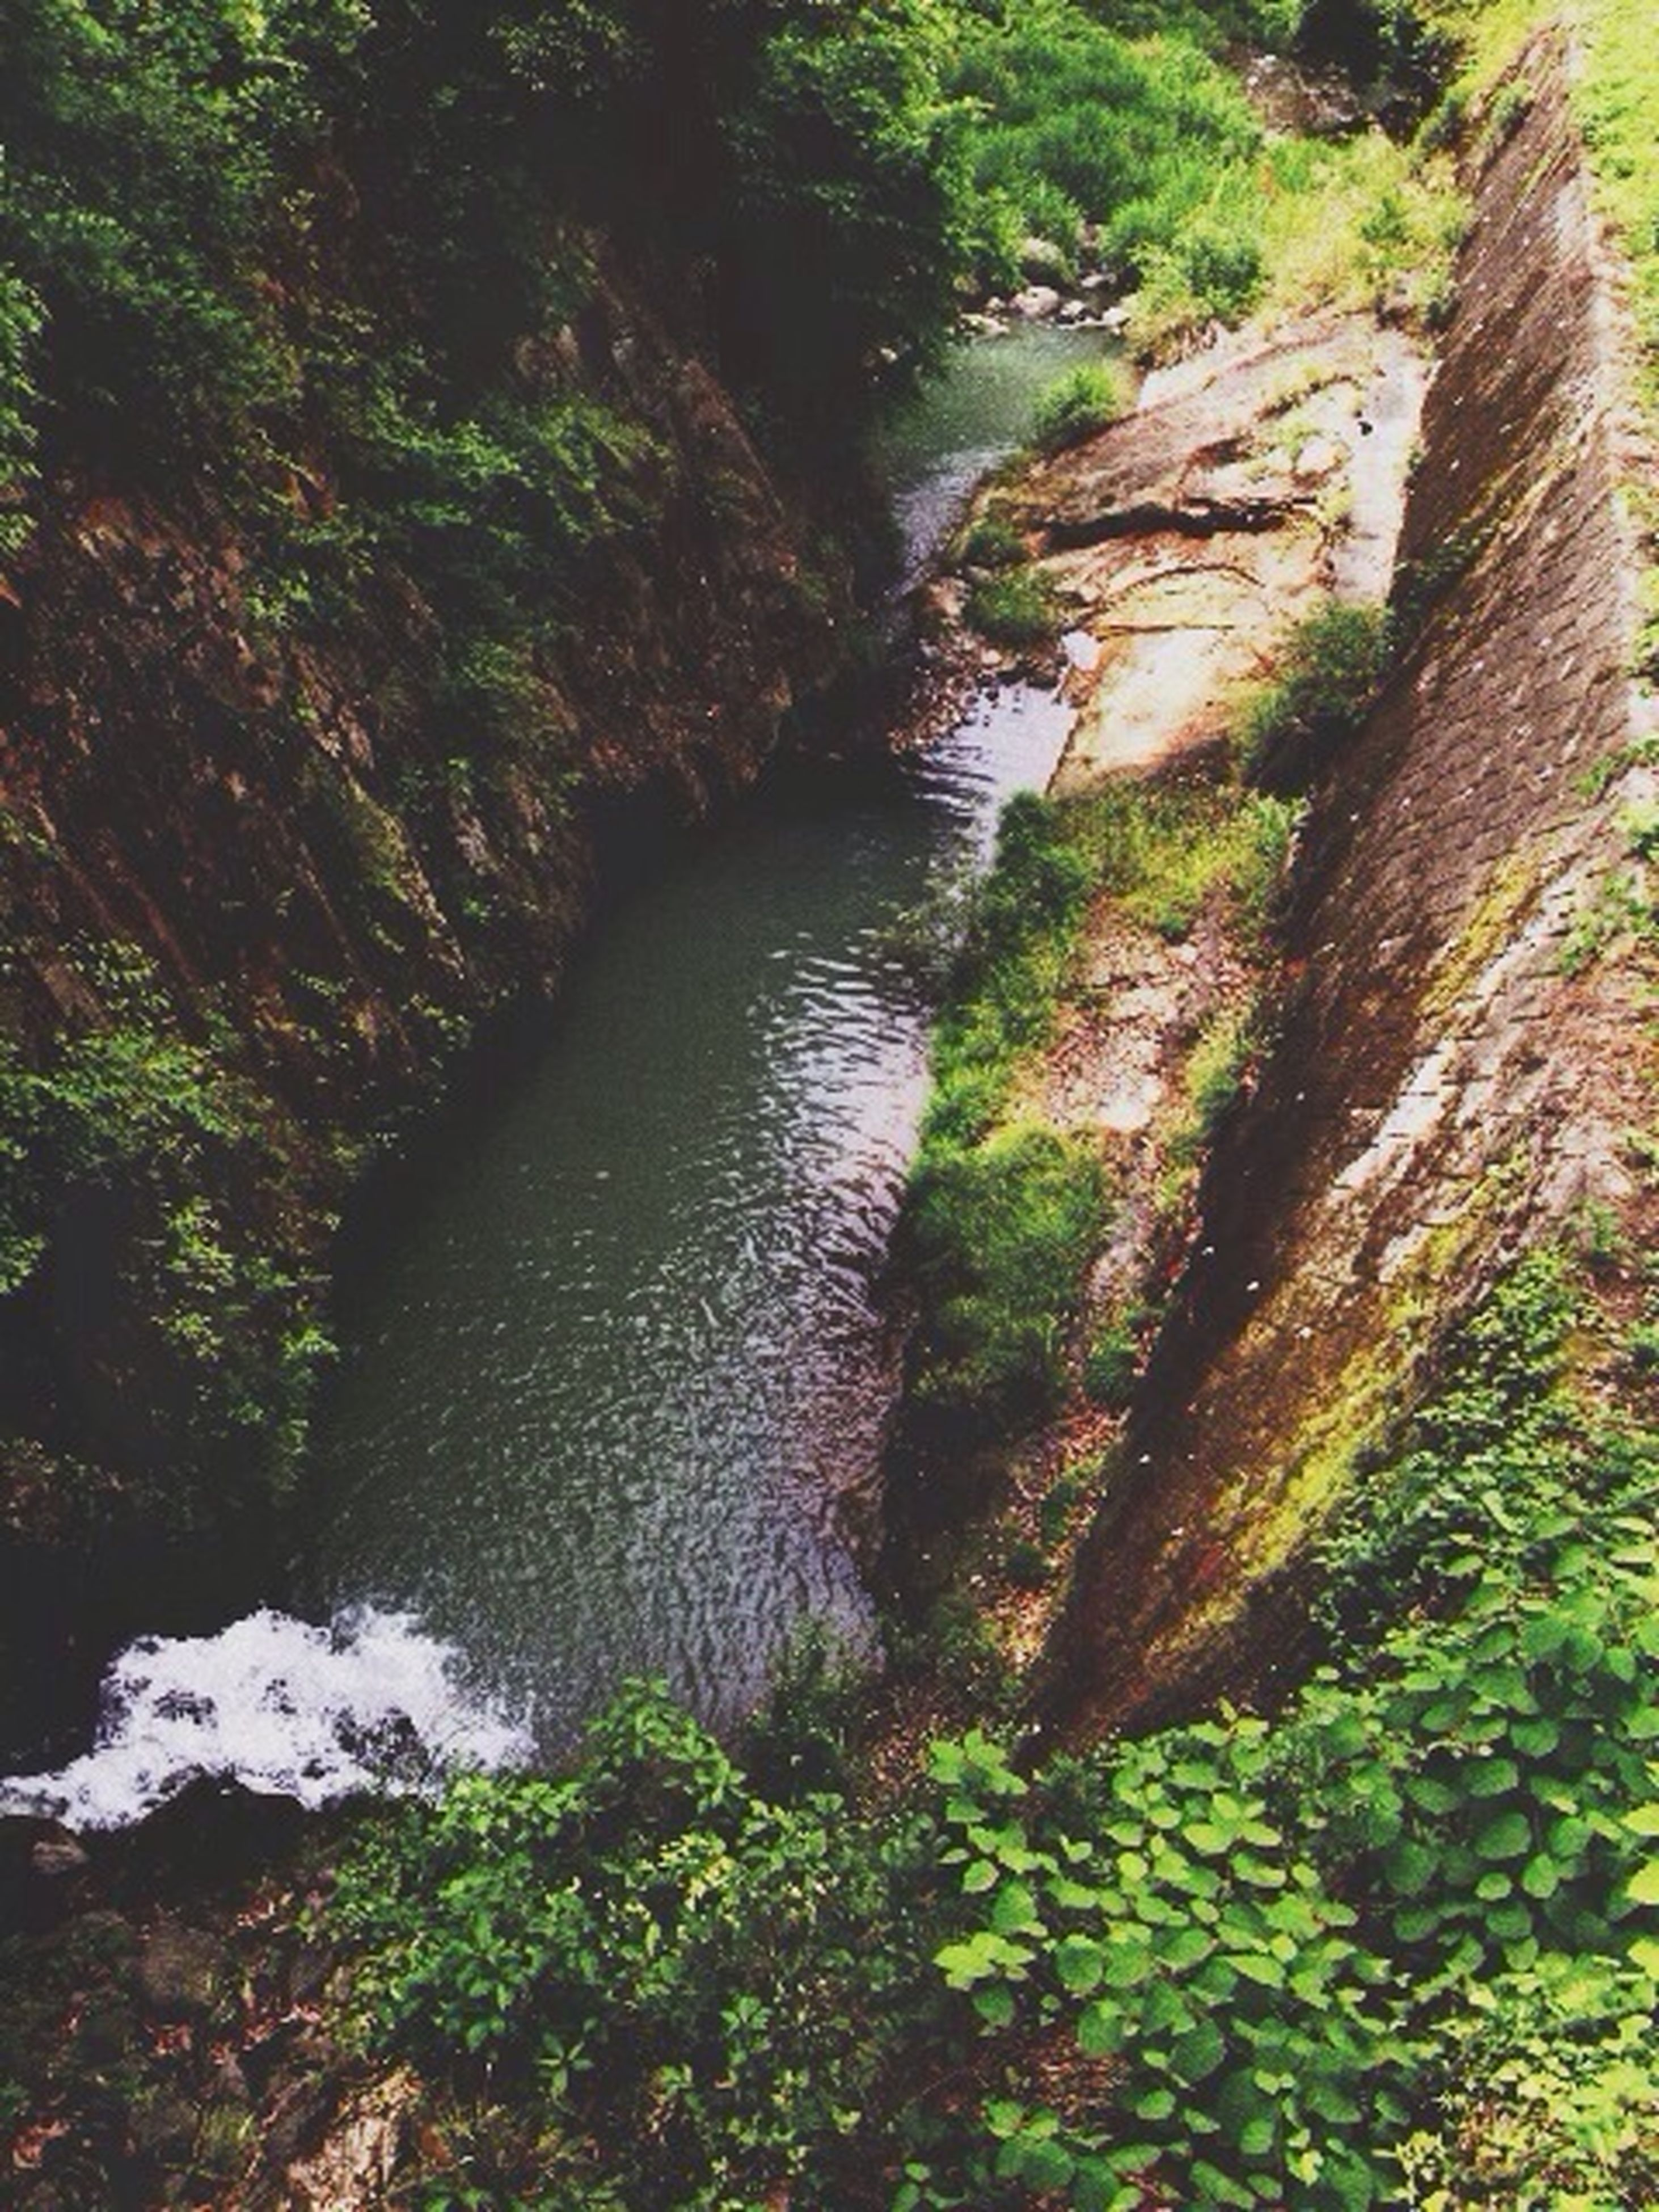 water, nature, tree, forest, tranquility, stream, rock - object, beauty in nature, growth, river, tranquil scene, plant, scenics, moss, day, flowing water, outdoors, green color, no people, high angle view